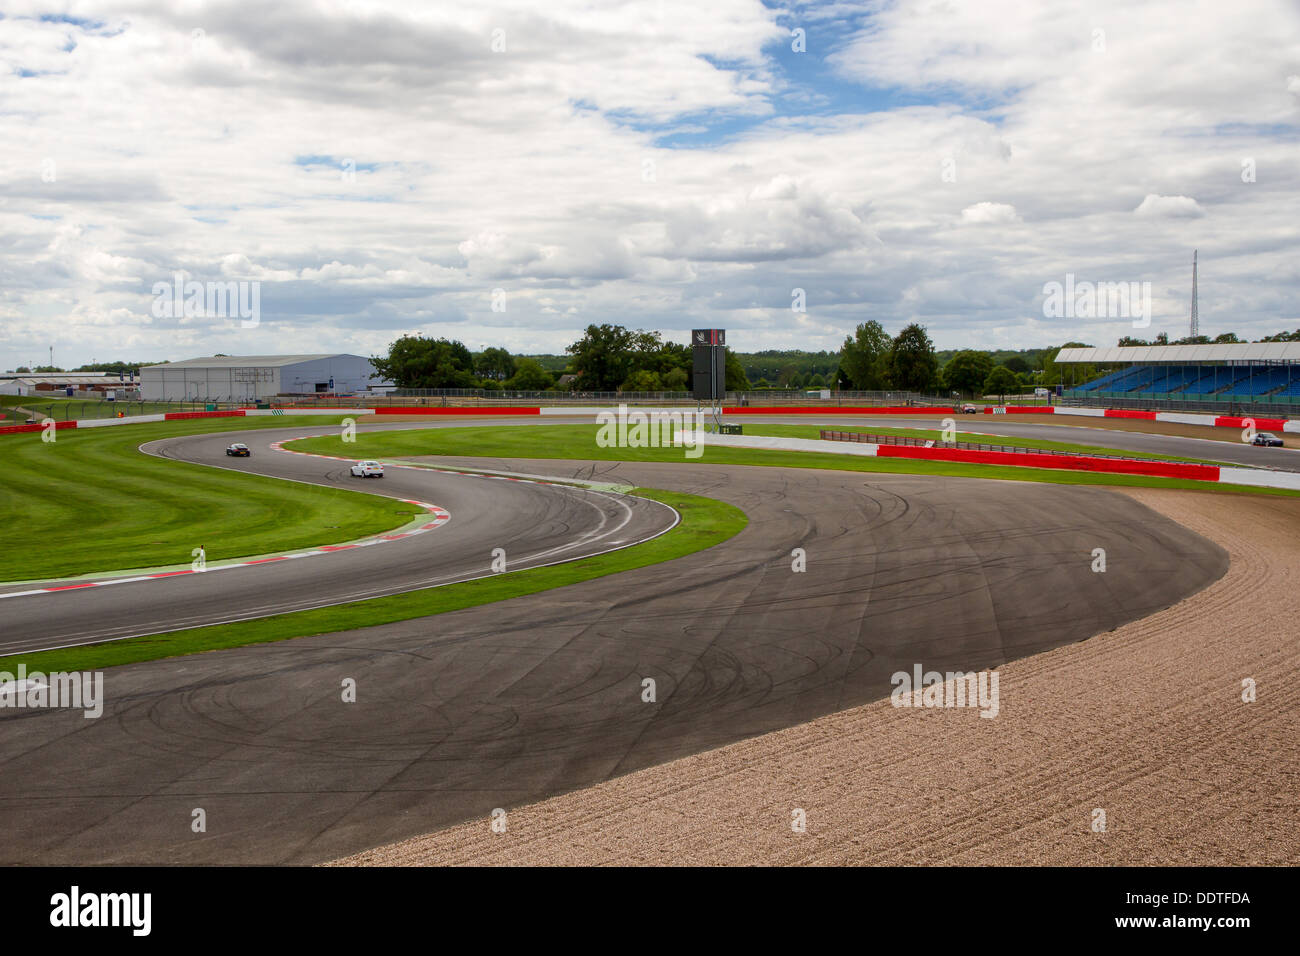 Brooklands, Luffield and Woodcote corners from the roof of the BRDC at Silverstone Racing Circuit. - Stock Image